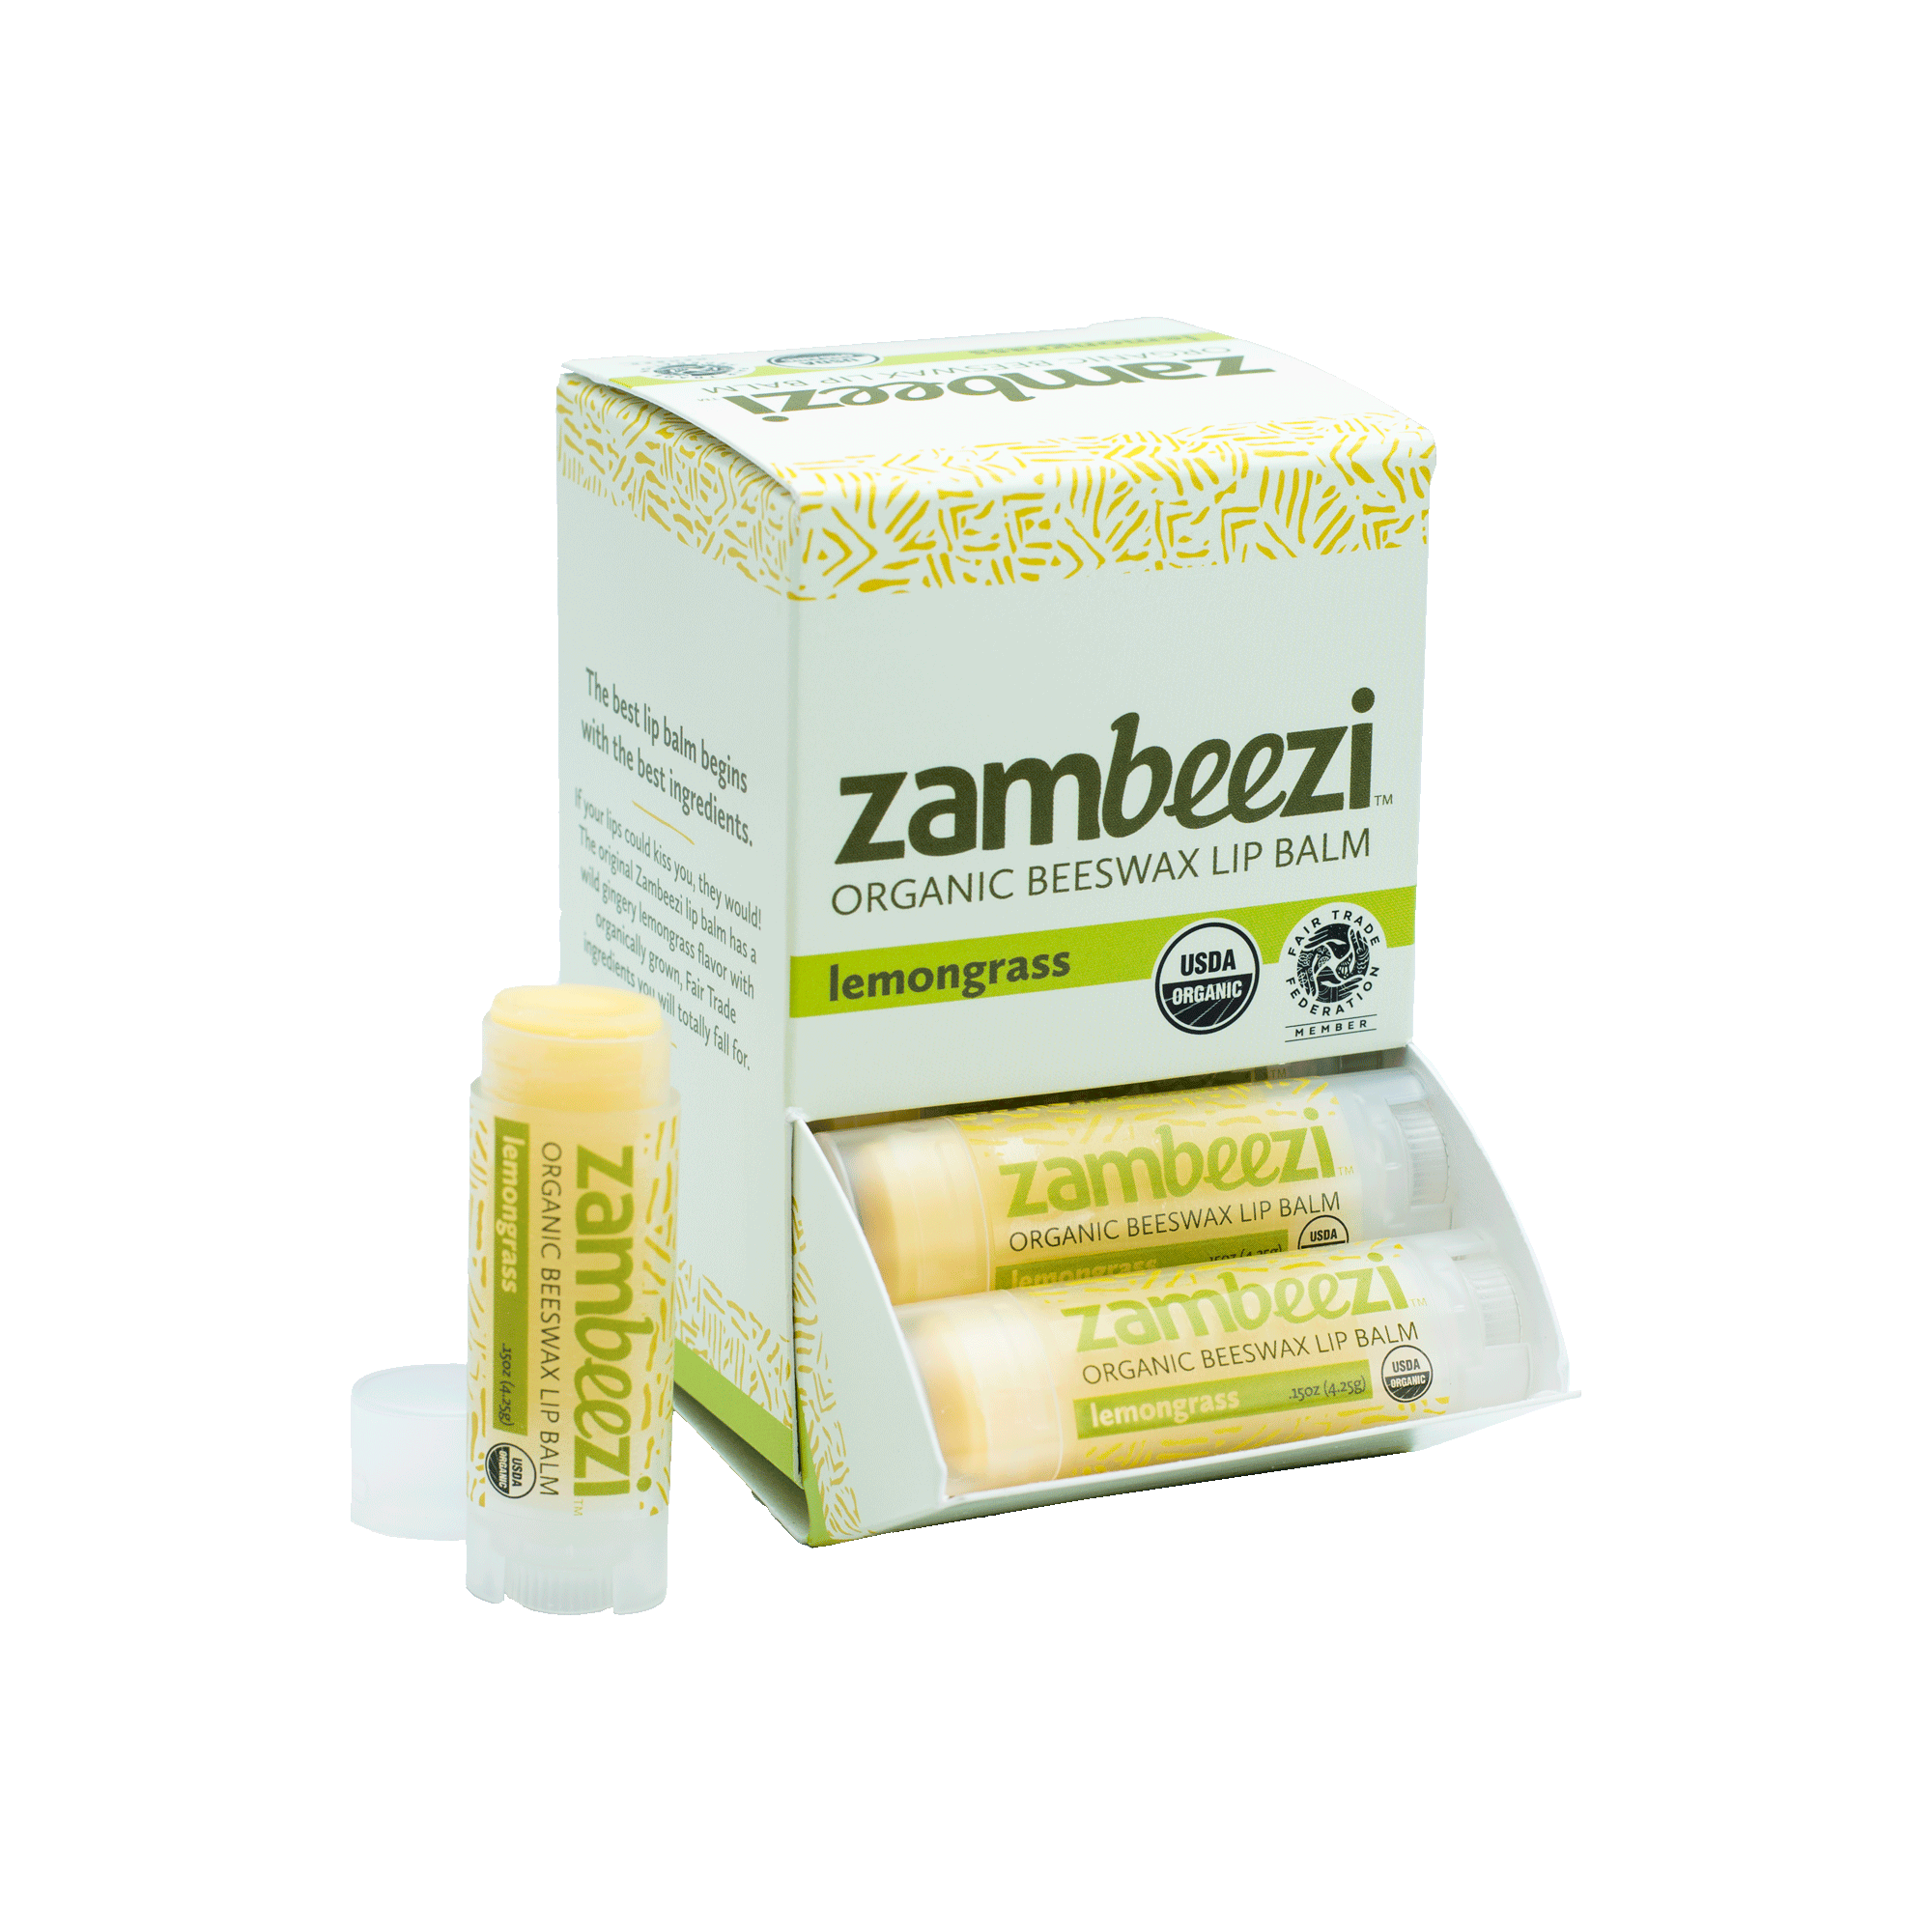 Zambeezi Lemon Grass Balm